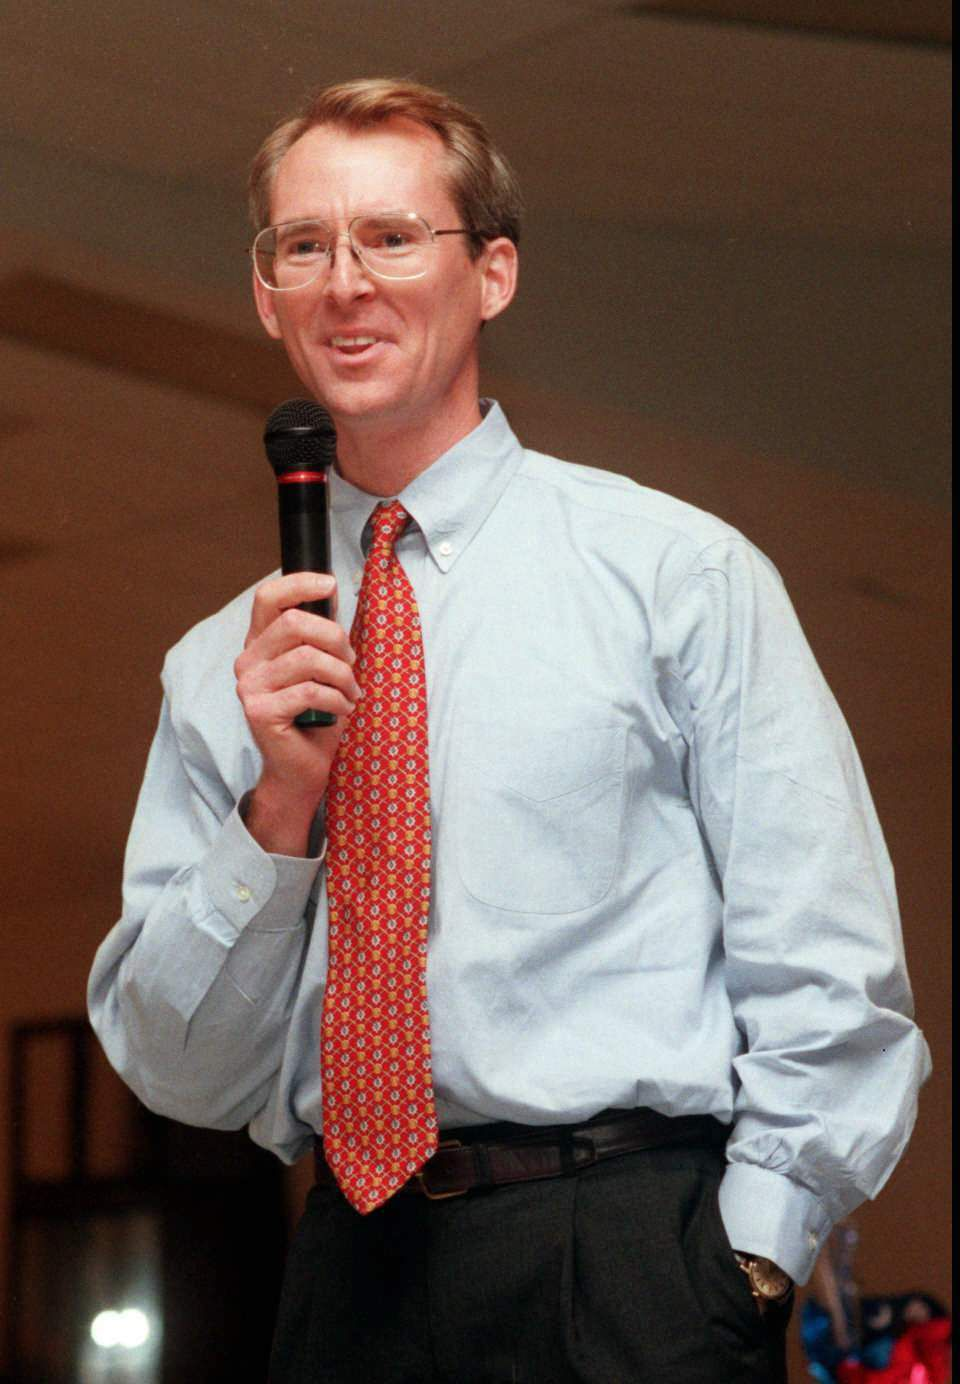 Ex-U.S. Rep. Bob Inglis to receive JFK Profile in Courage Award for reversal on climate change